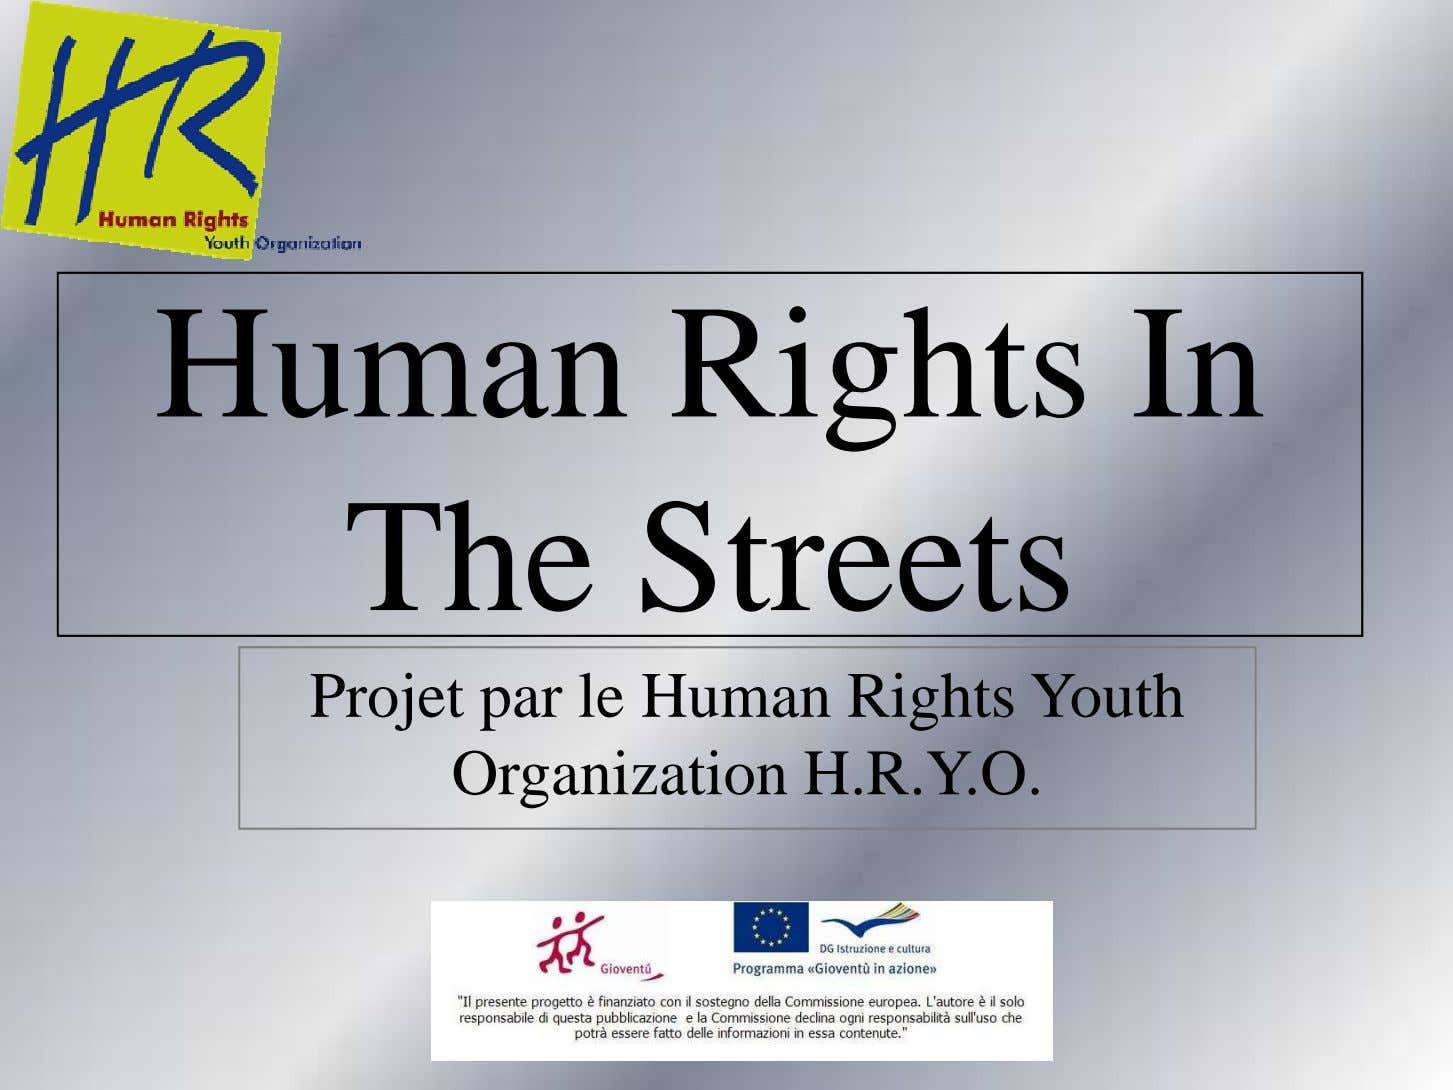 Human Rights In The Streets Projet par le Human Rights Youth Organization H.R.Y.O.